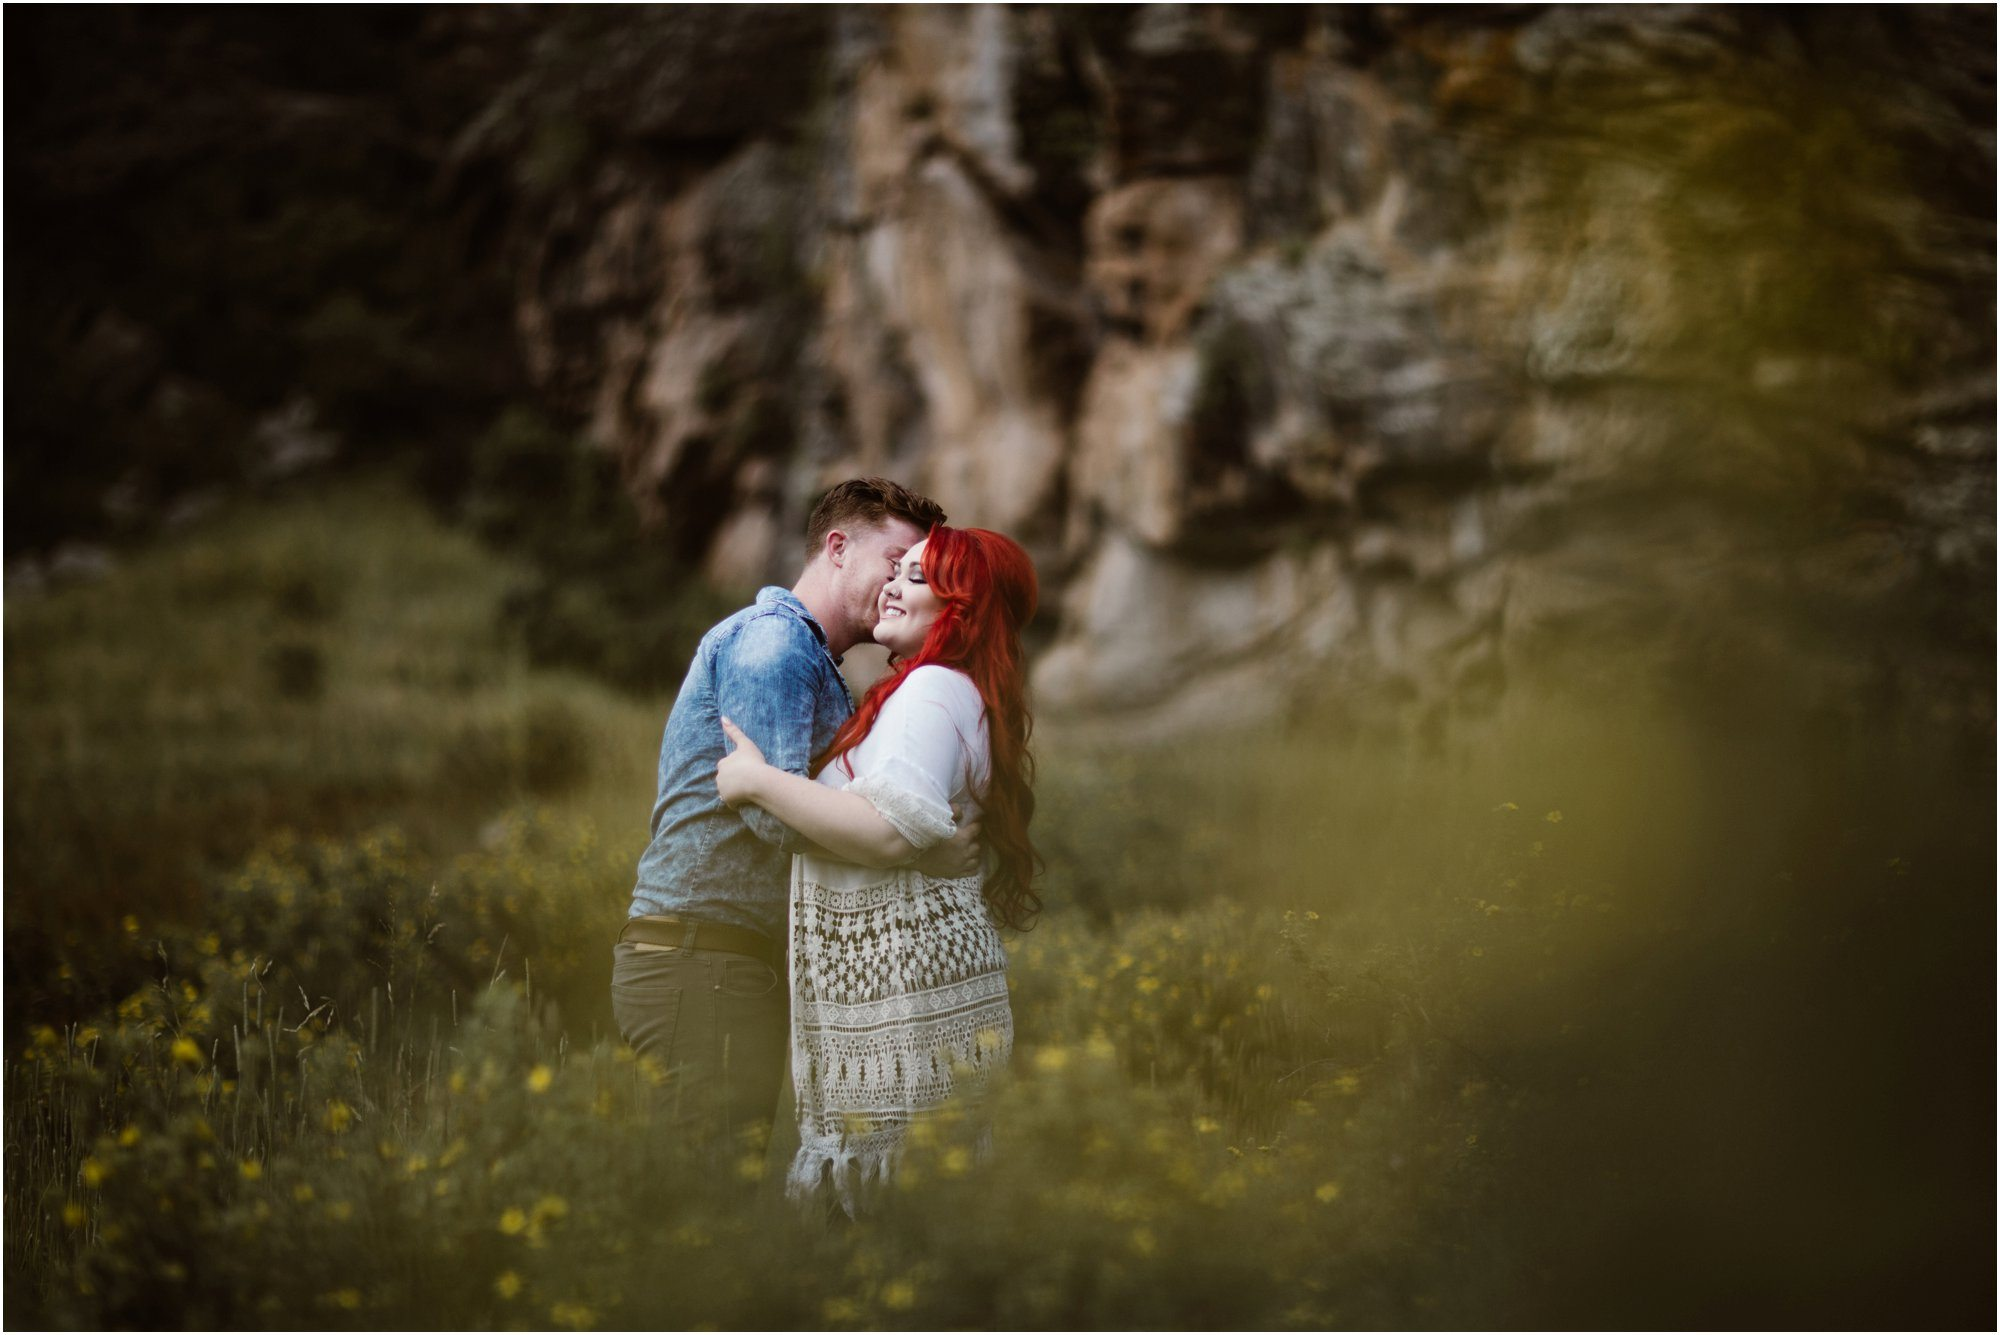 006Blue Rose Photography_ Albuquerque, Santa Fe, New Mexico wedding photographer_ engagement pictures